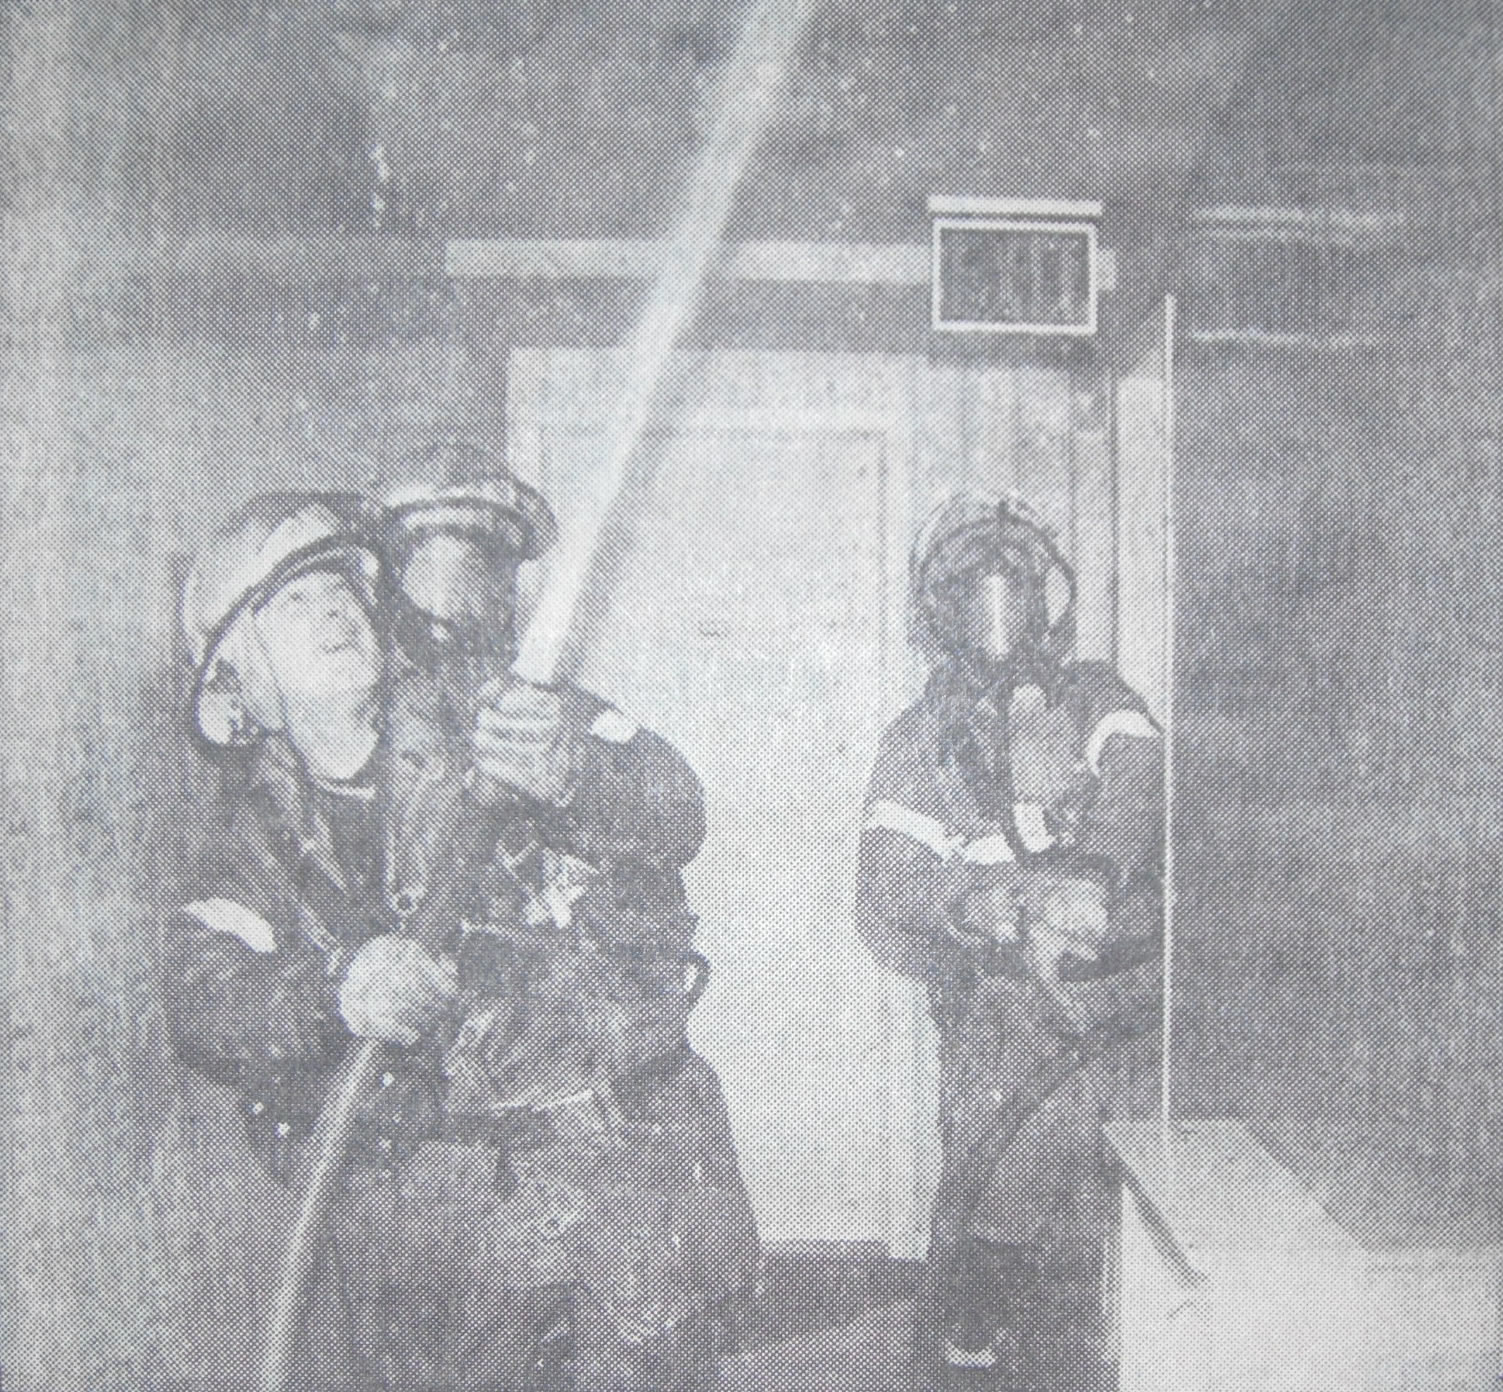 Fire fighters spraying water during an interior fire overhauling operation.